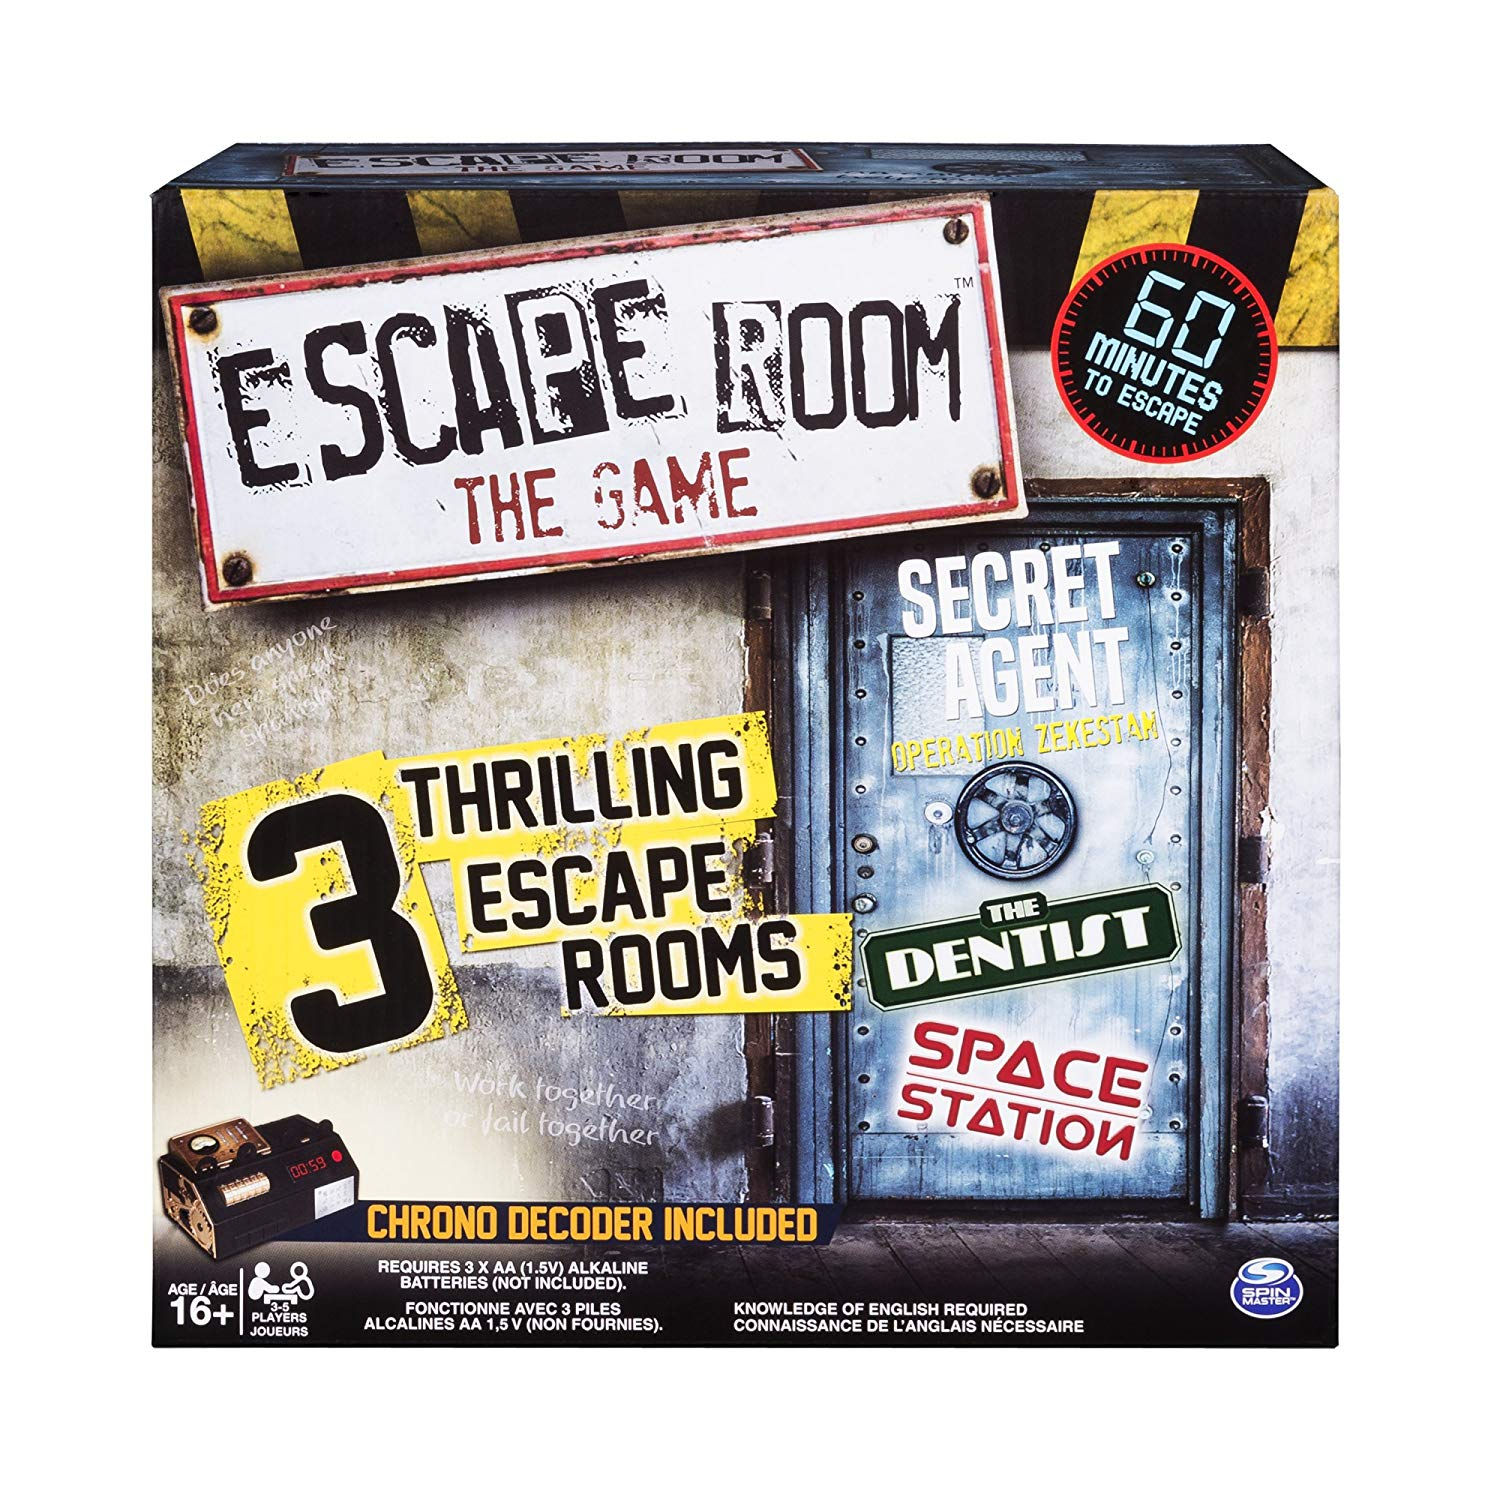 Spin Master Games – Escape Room, The Game with 3 Escape Rooms, Ages 16 and Up